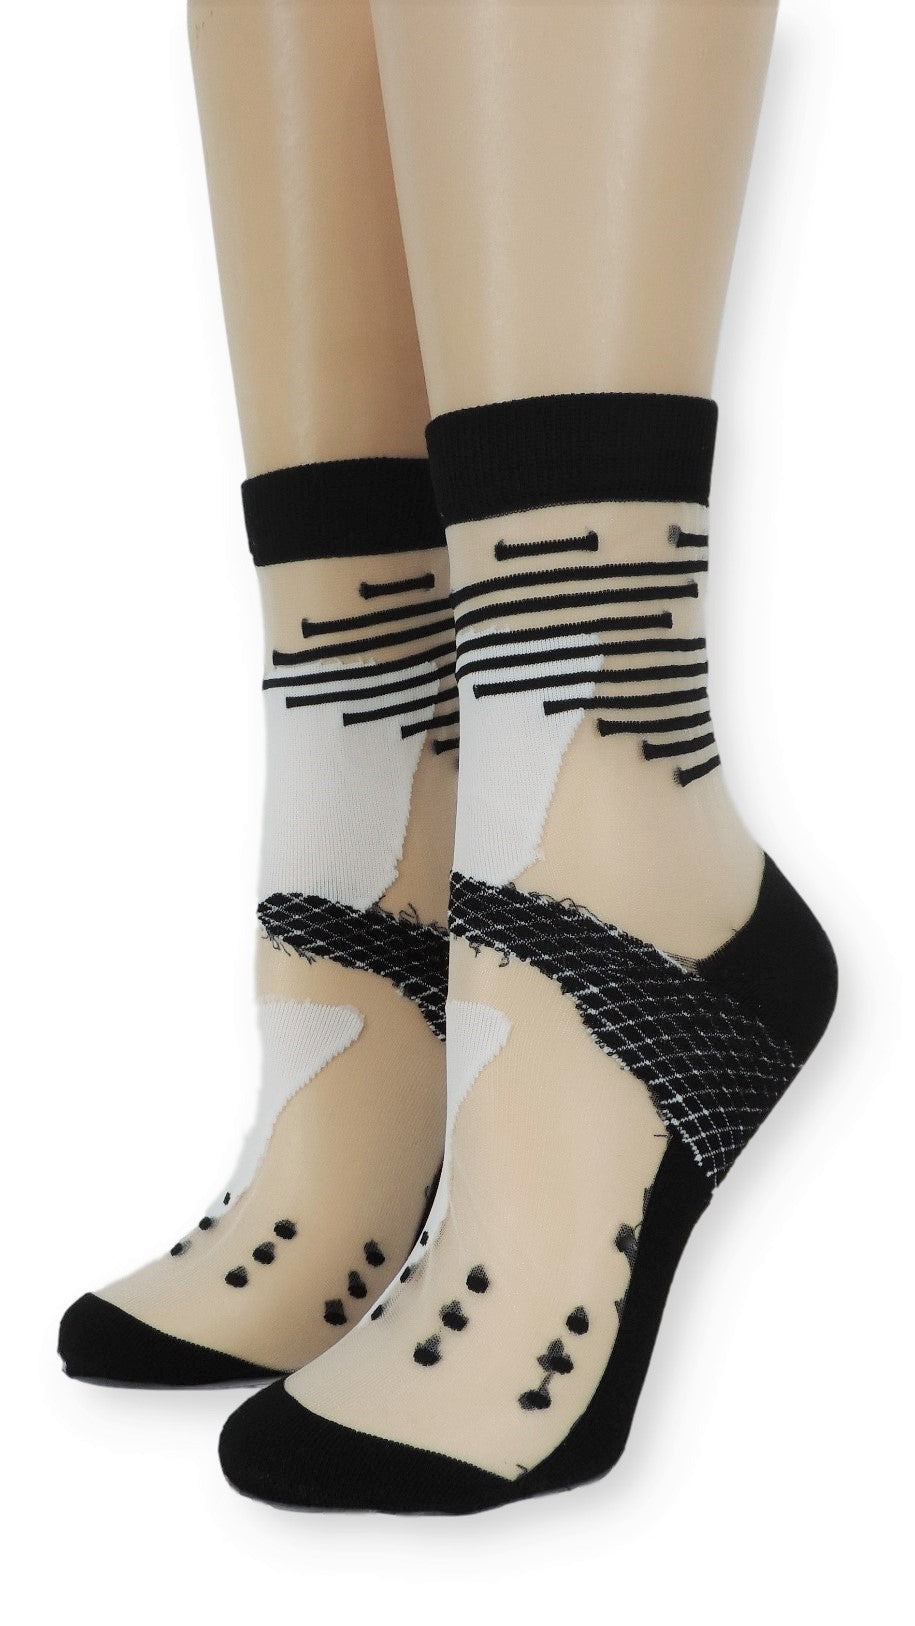 Vivid Black & White Sheer Socks - Global Trendz Fashion®